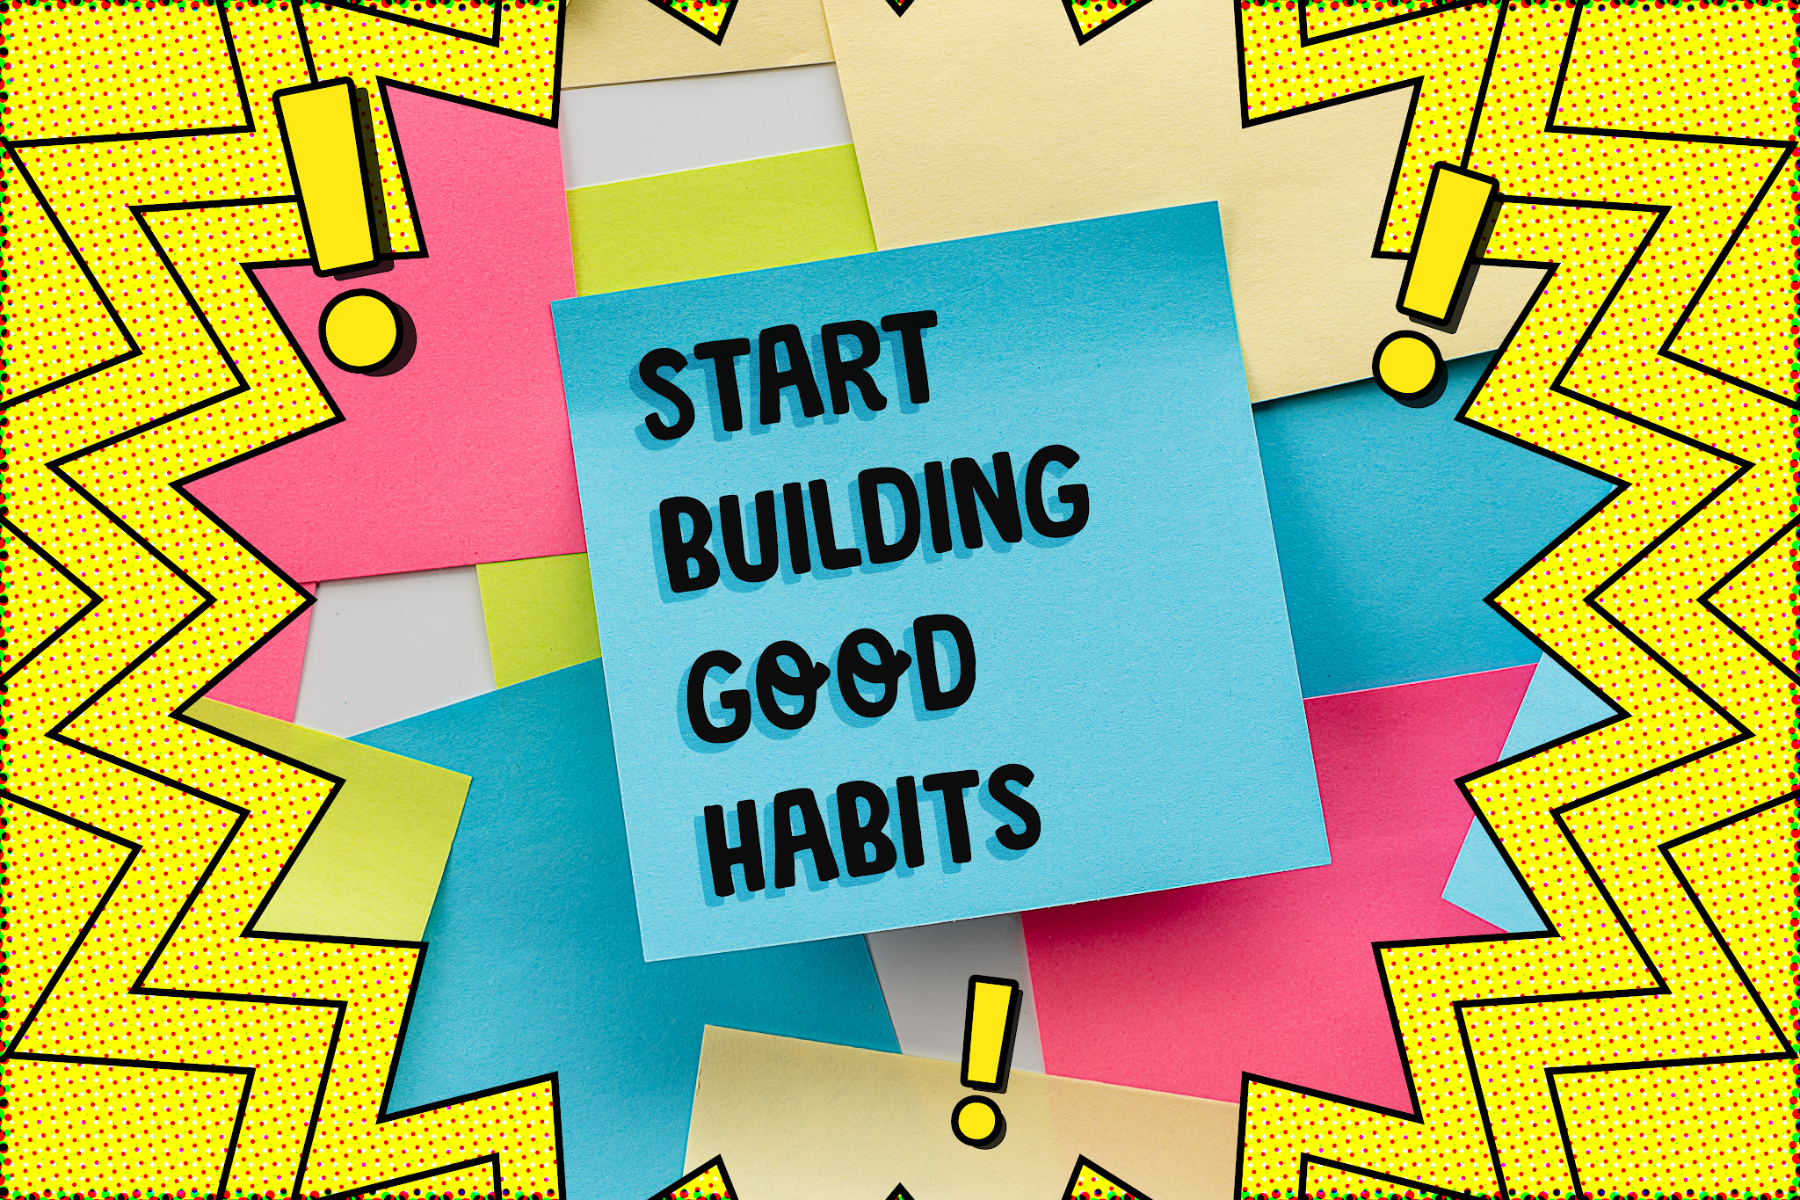 """Blue post-it note with """"Start building good habits"""" written on it"""